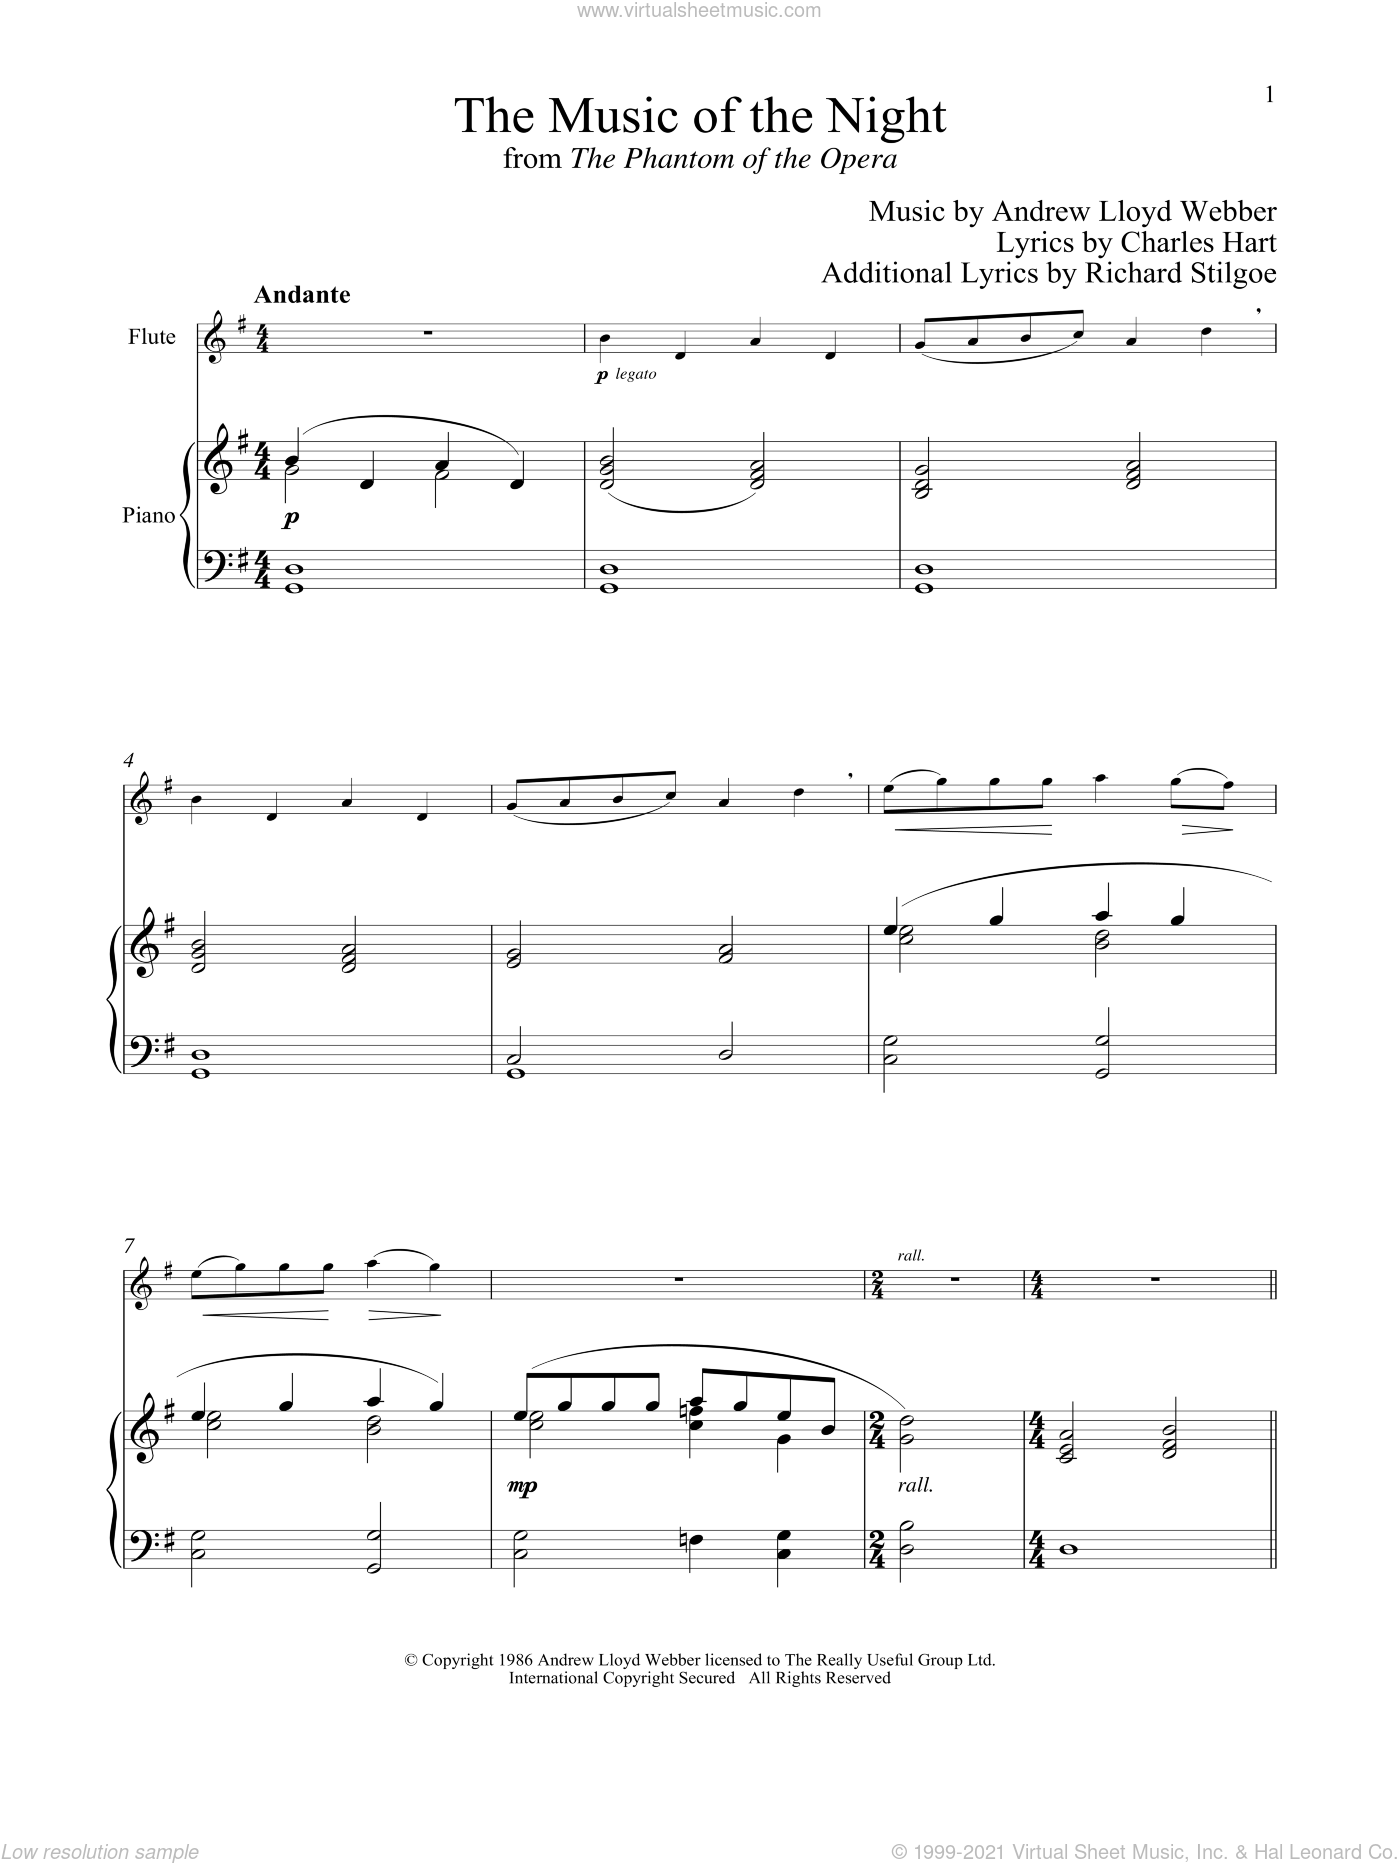 The Music of the Night (from The Phantom of the Opera) sheet music for flute and piano by Andrew Lloyd Webber, Charles Hart and Richard Stilgoe, intermediate skill level